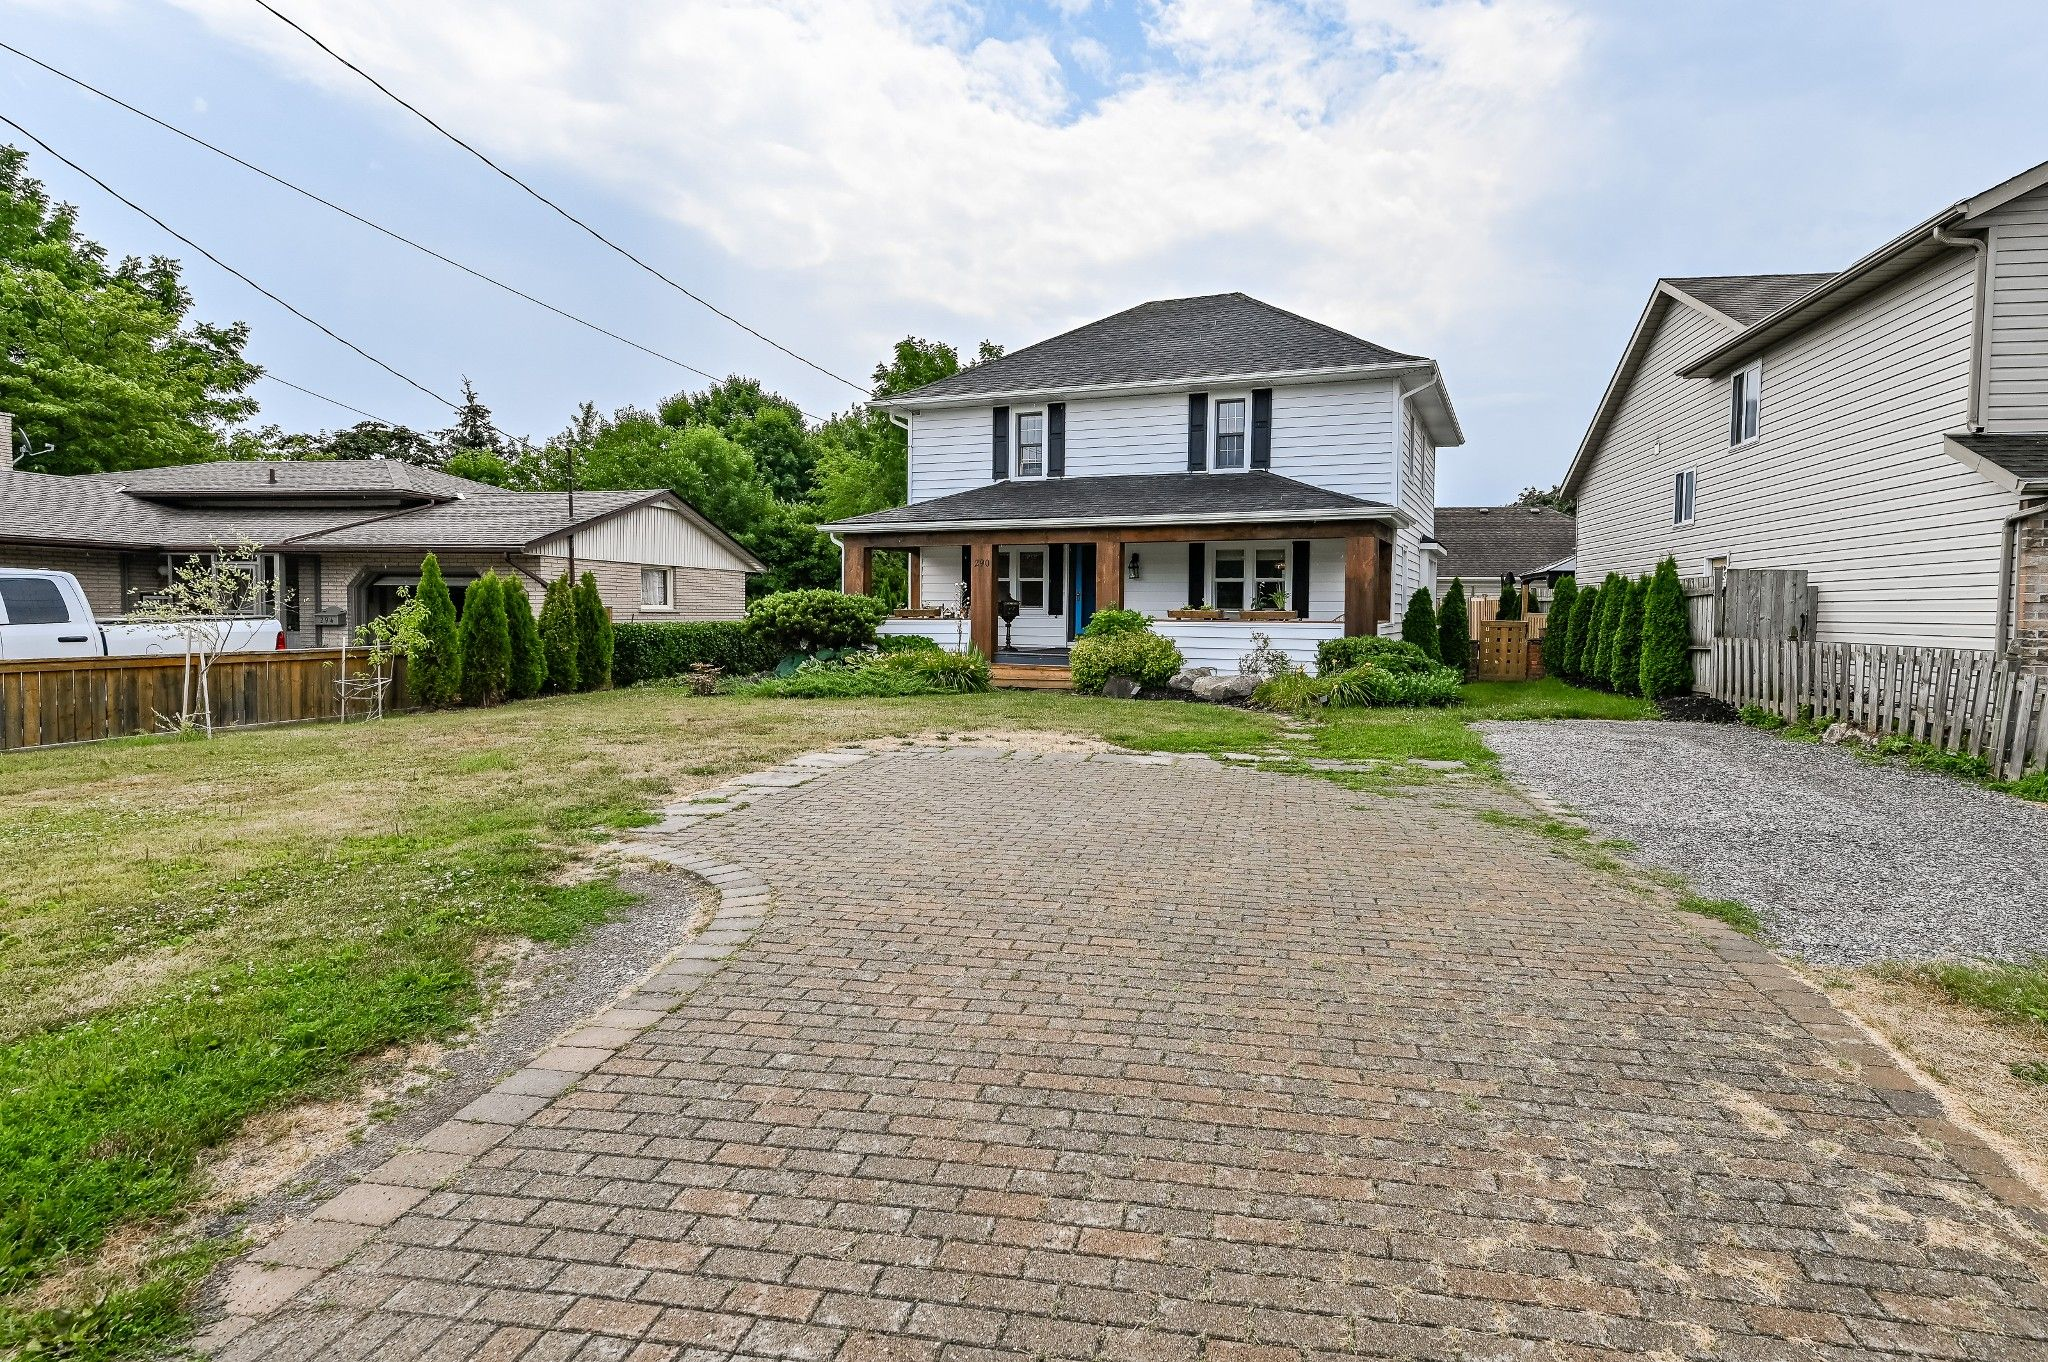 Main Photo: 290 Lakehore Road in St. Catharines: House for sale : MLS®# H4082596